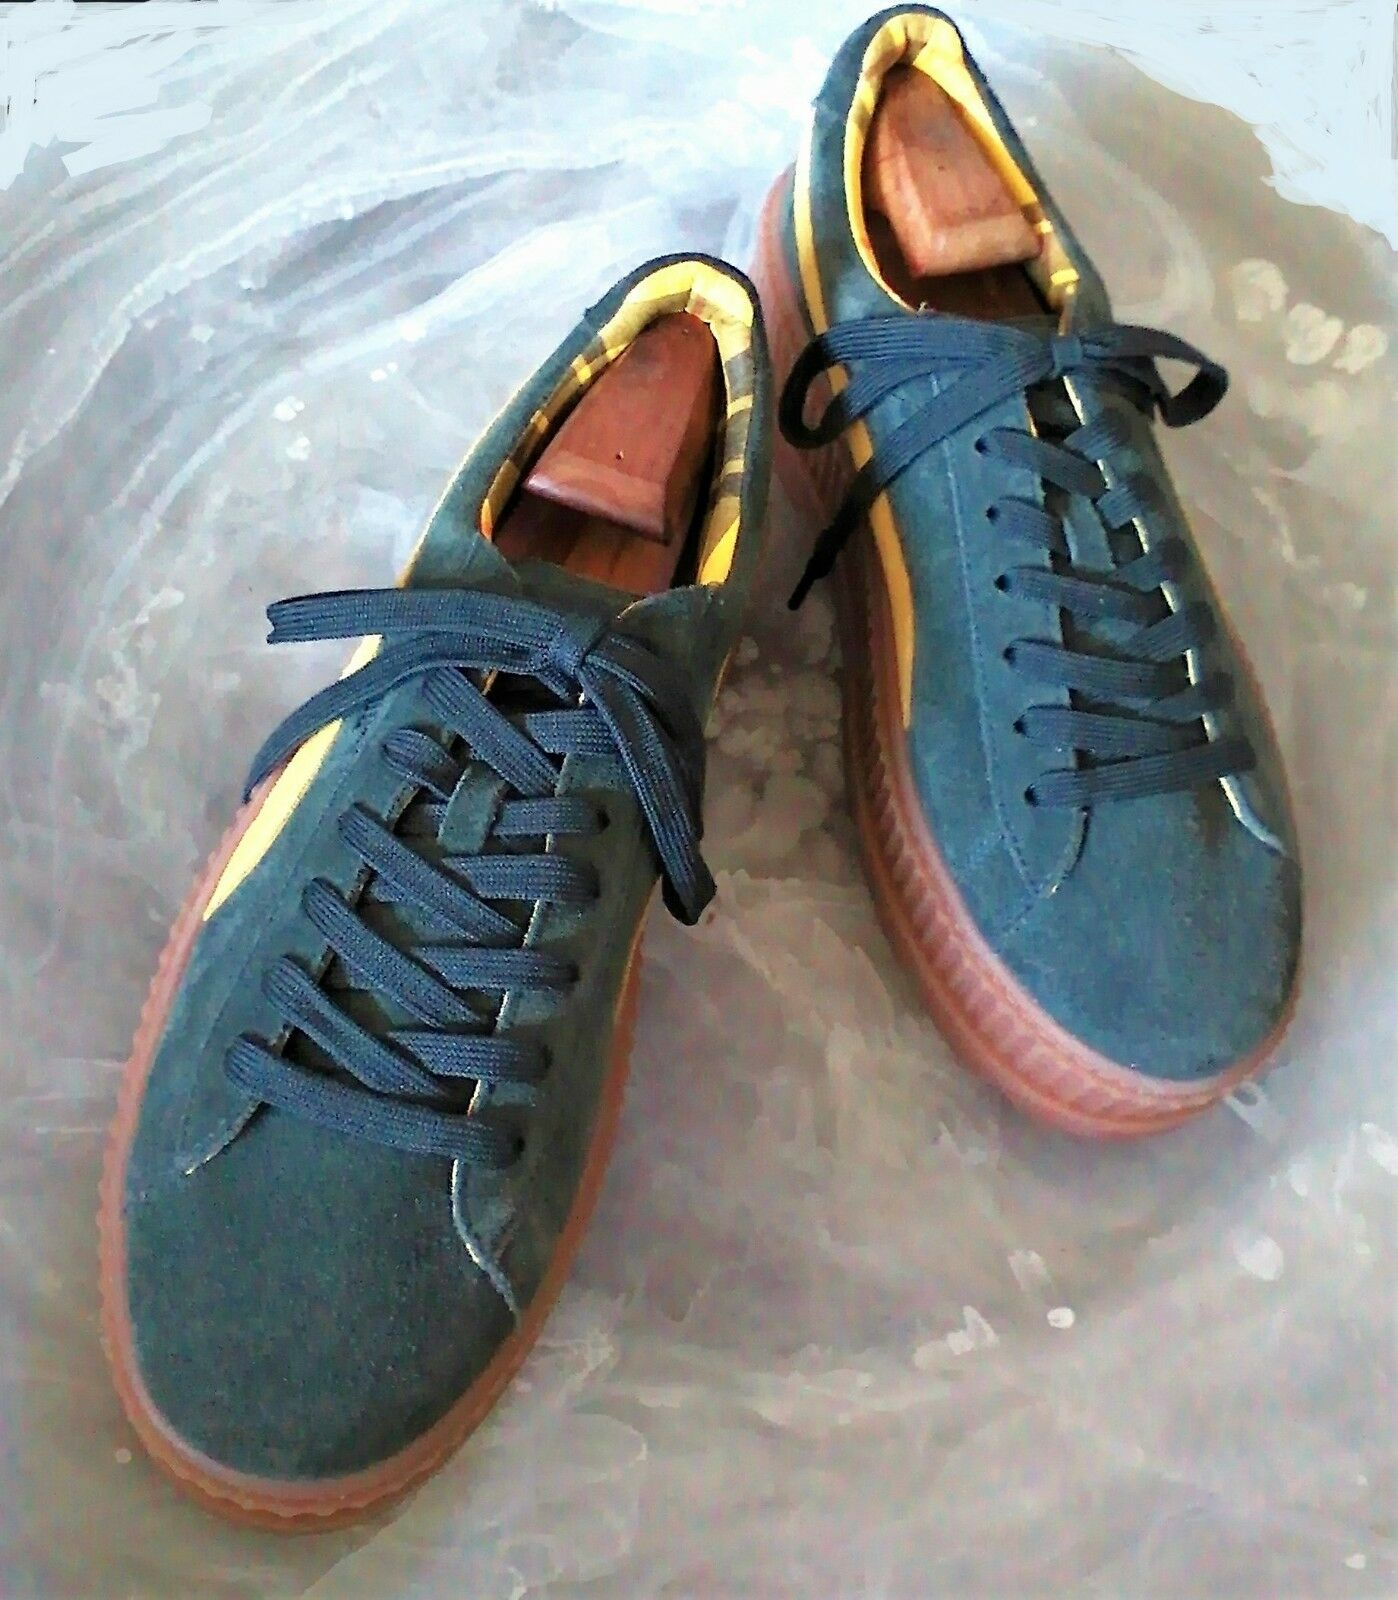 FENTY by Rihanna x PUMA Men's 11 M Green Yellow Suede Platform Creepers Sneakers